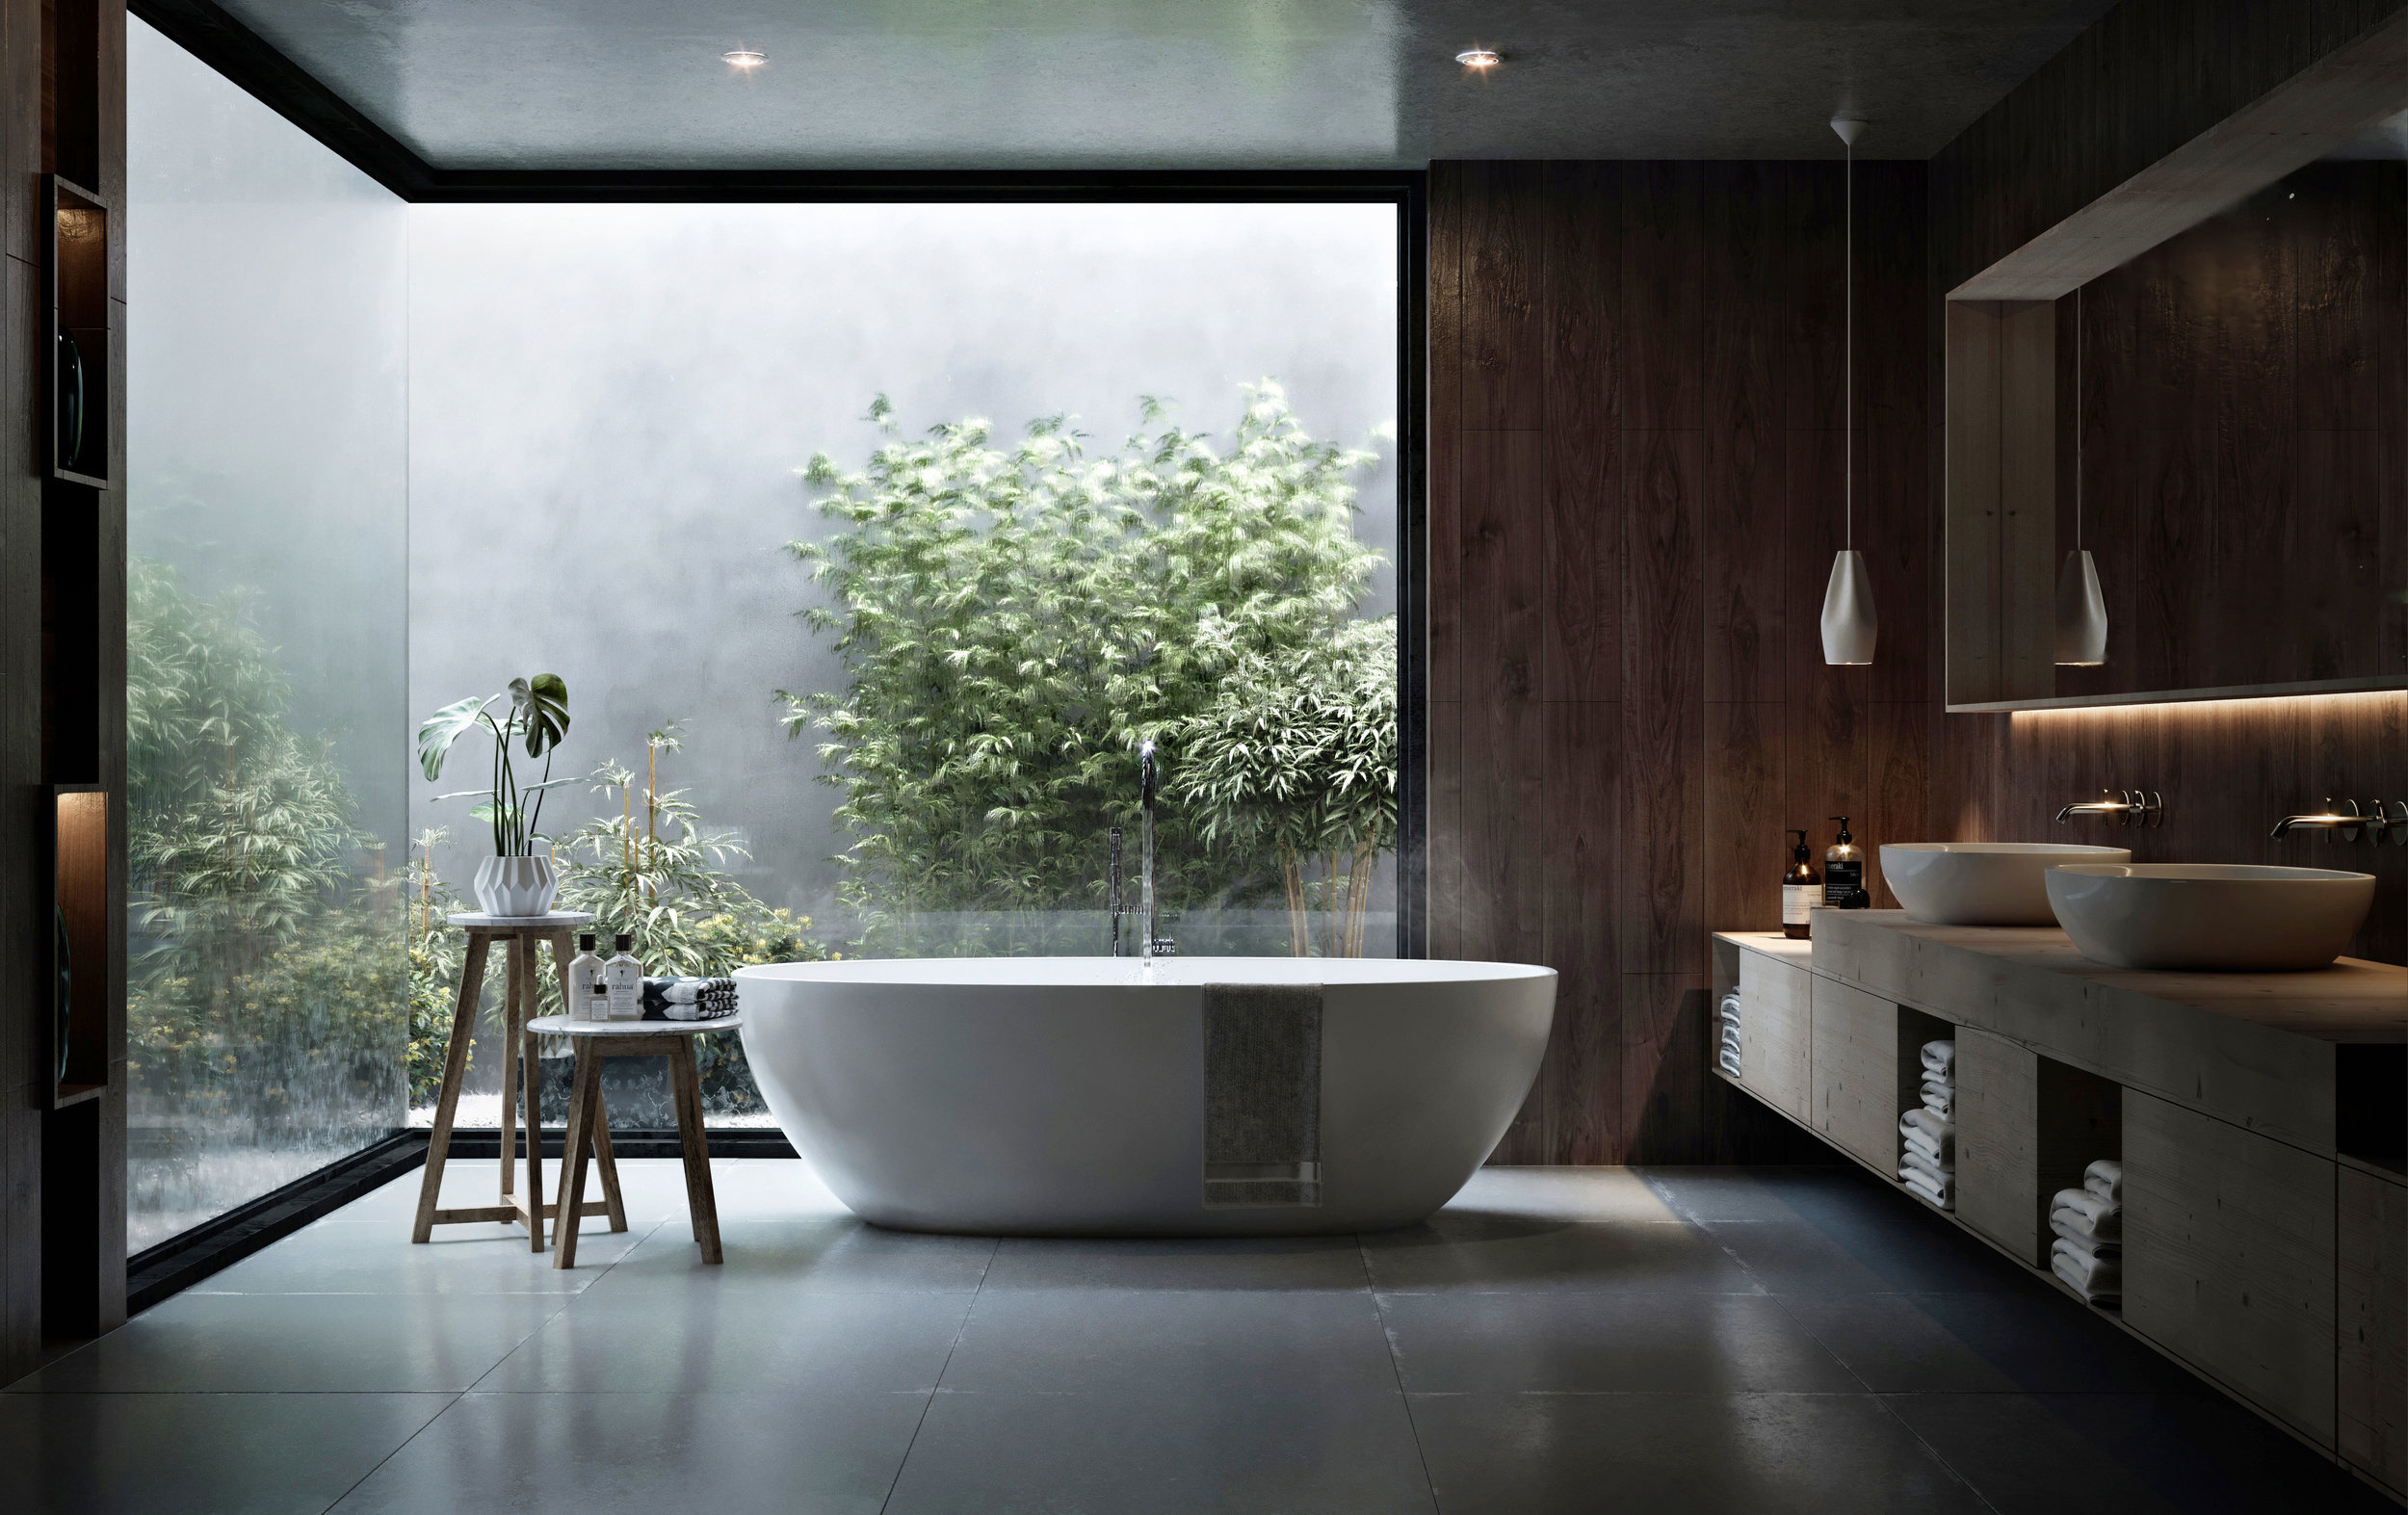 Copy of Copy of bathroom interior design visualization architectur